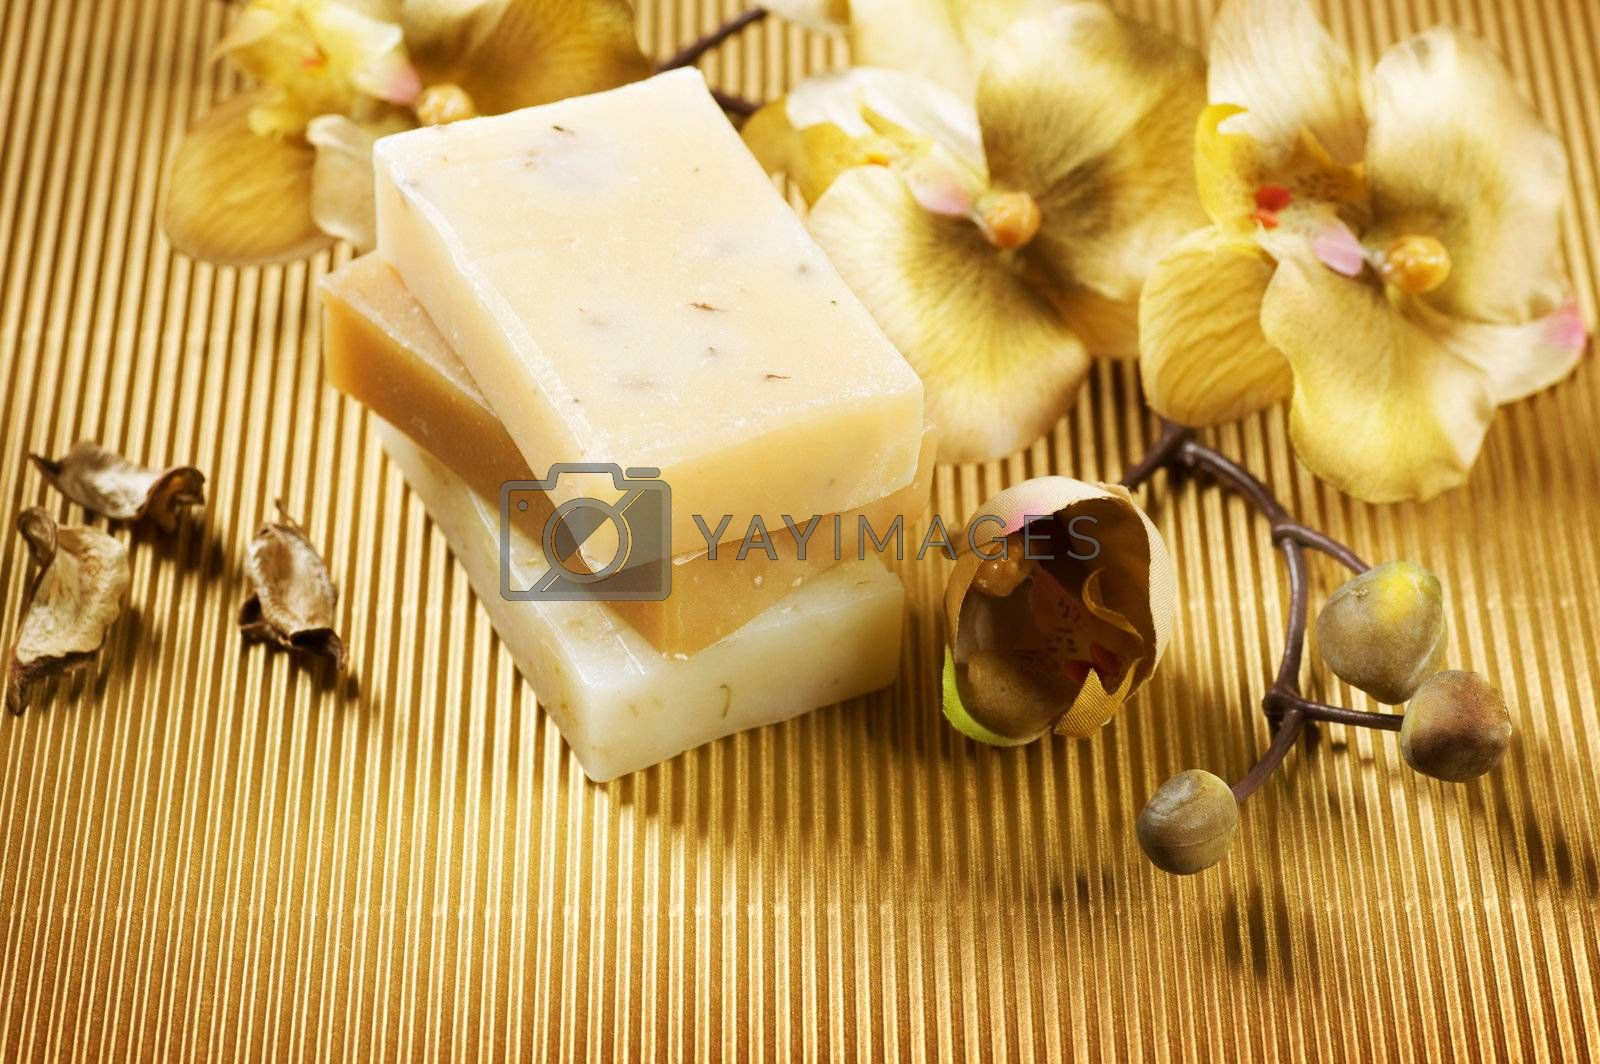 Handmade Soap. Spa